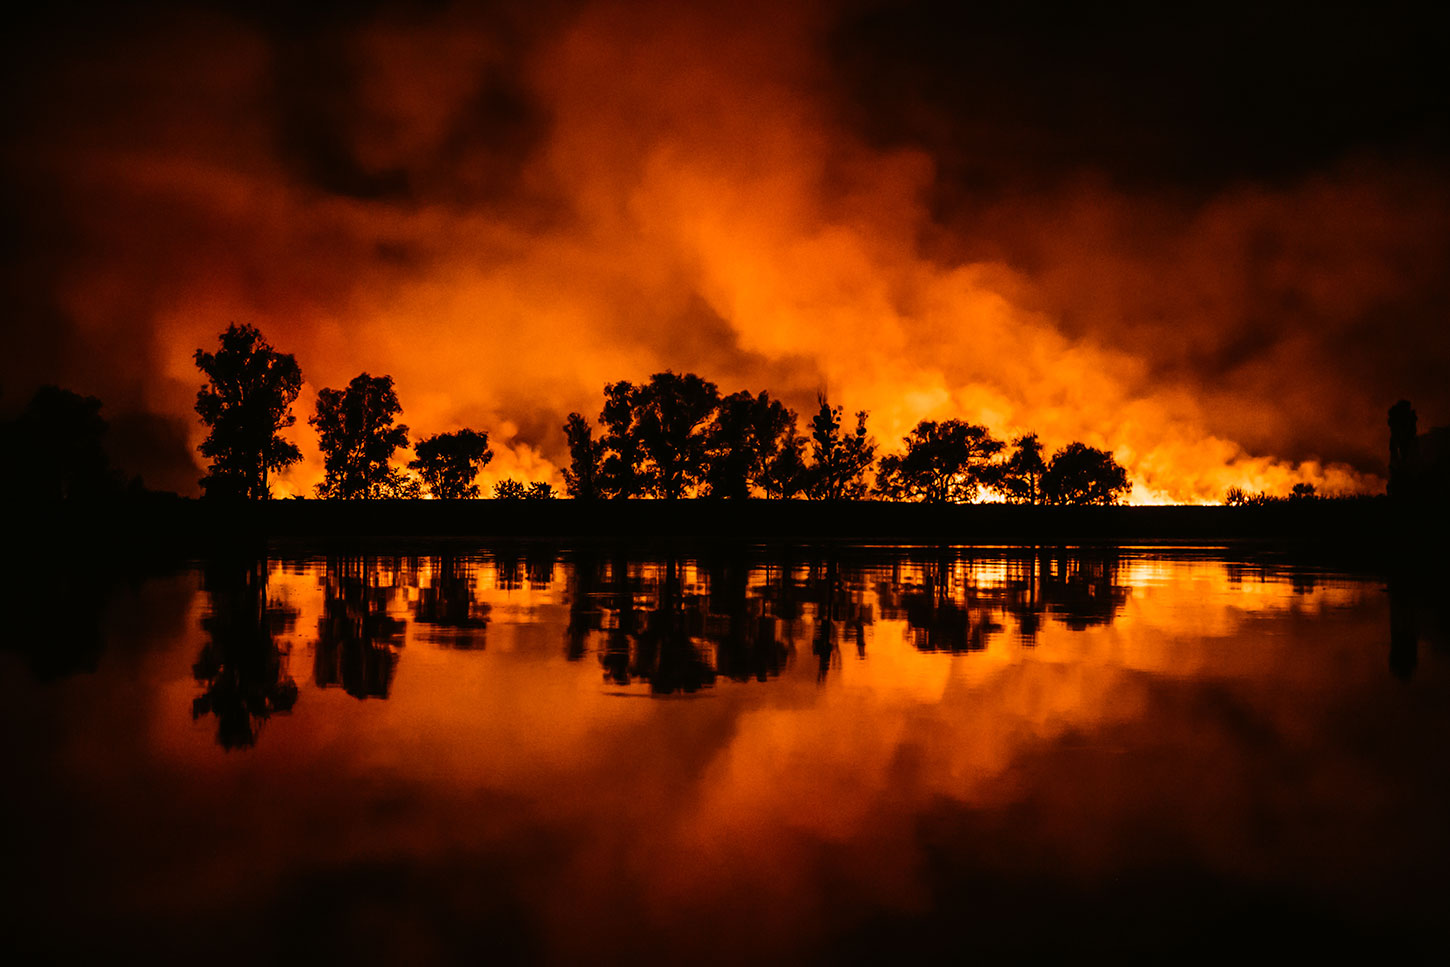 Wildfire reflected on water with silhouetted trees